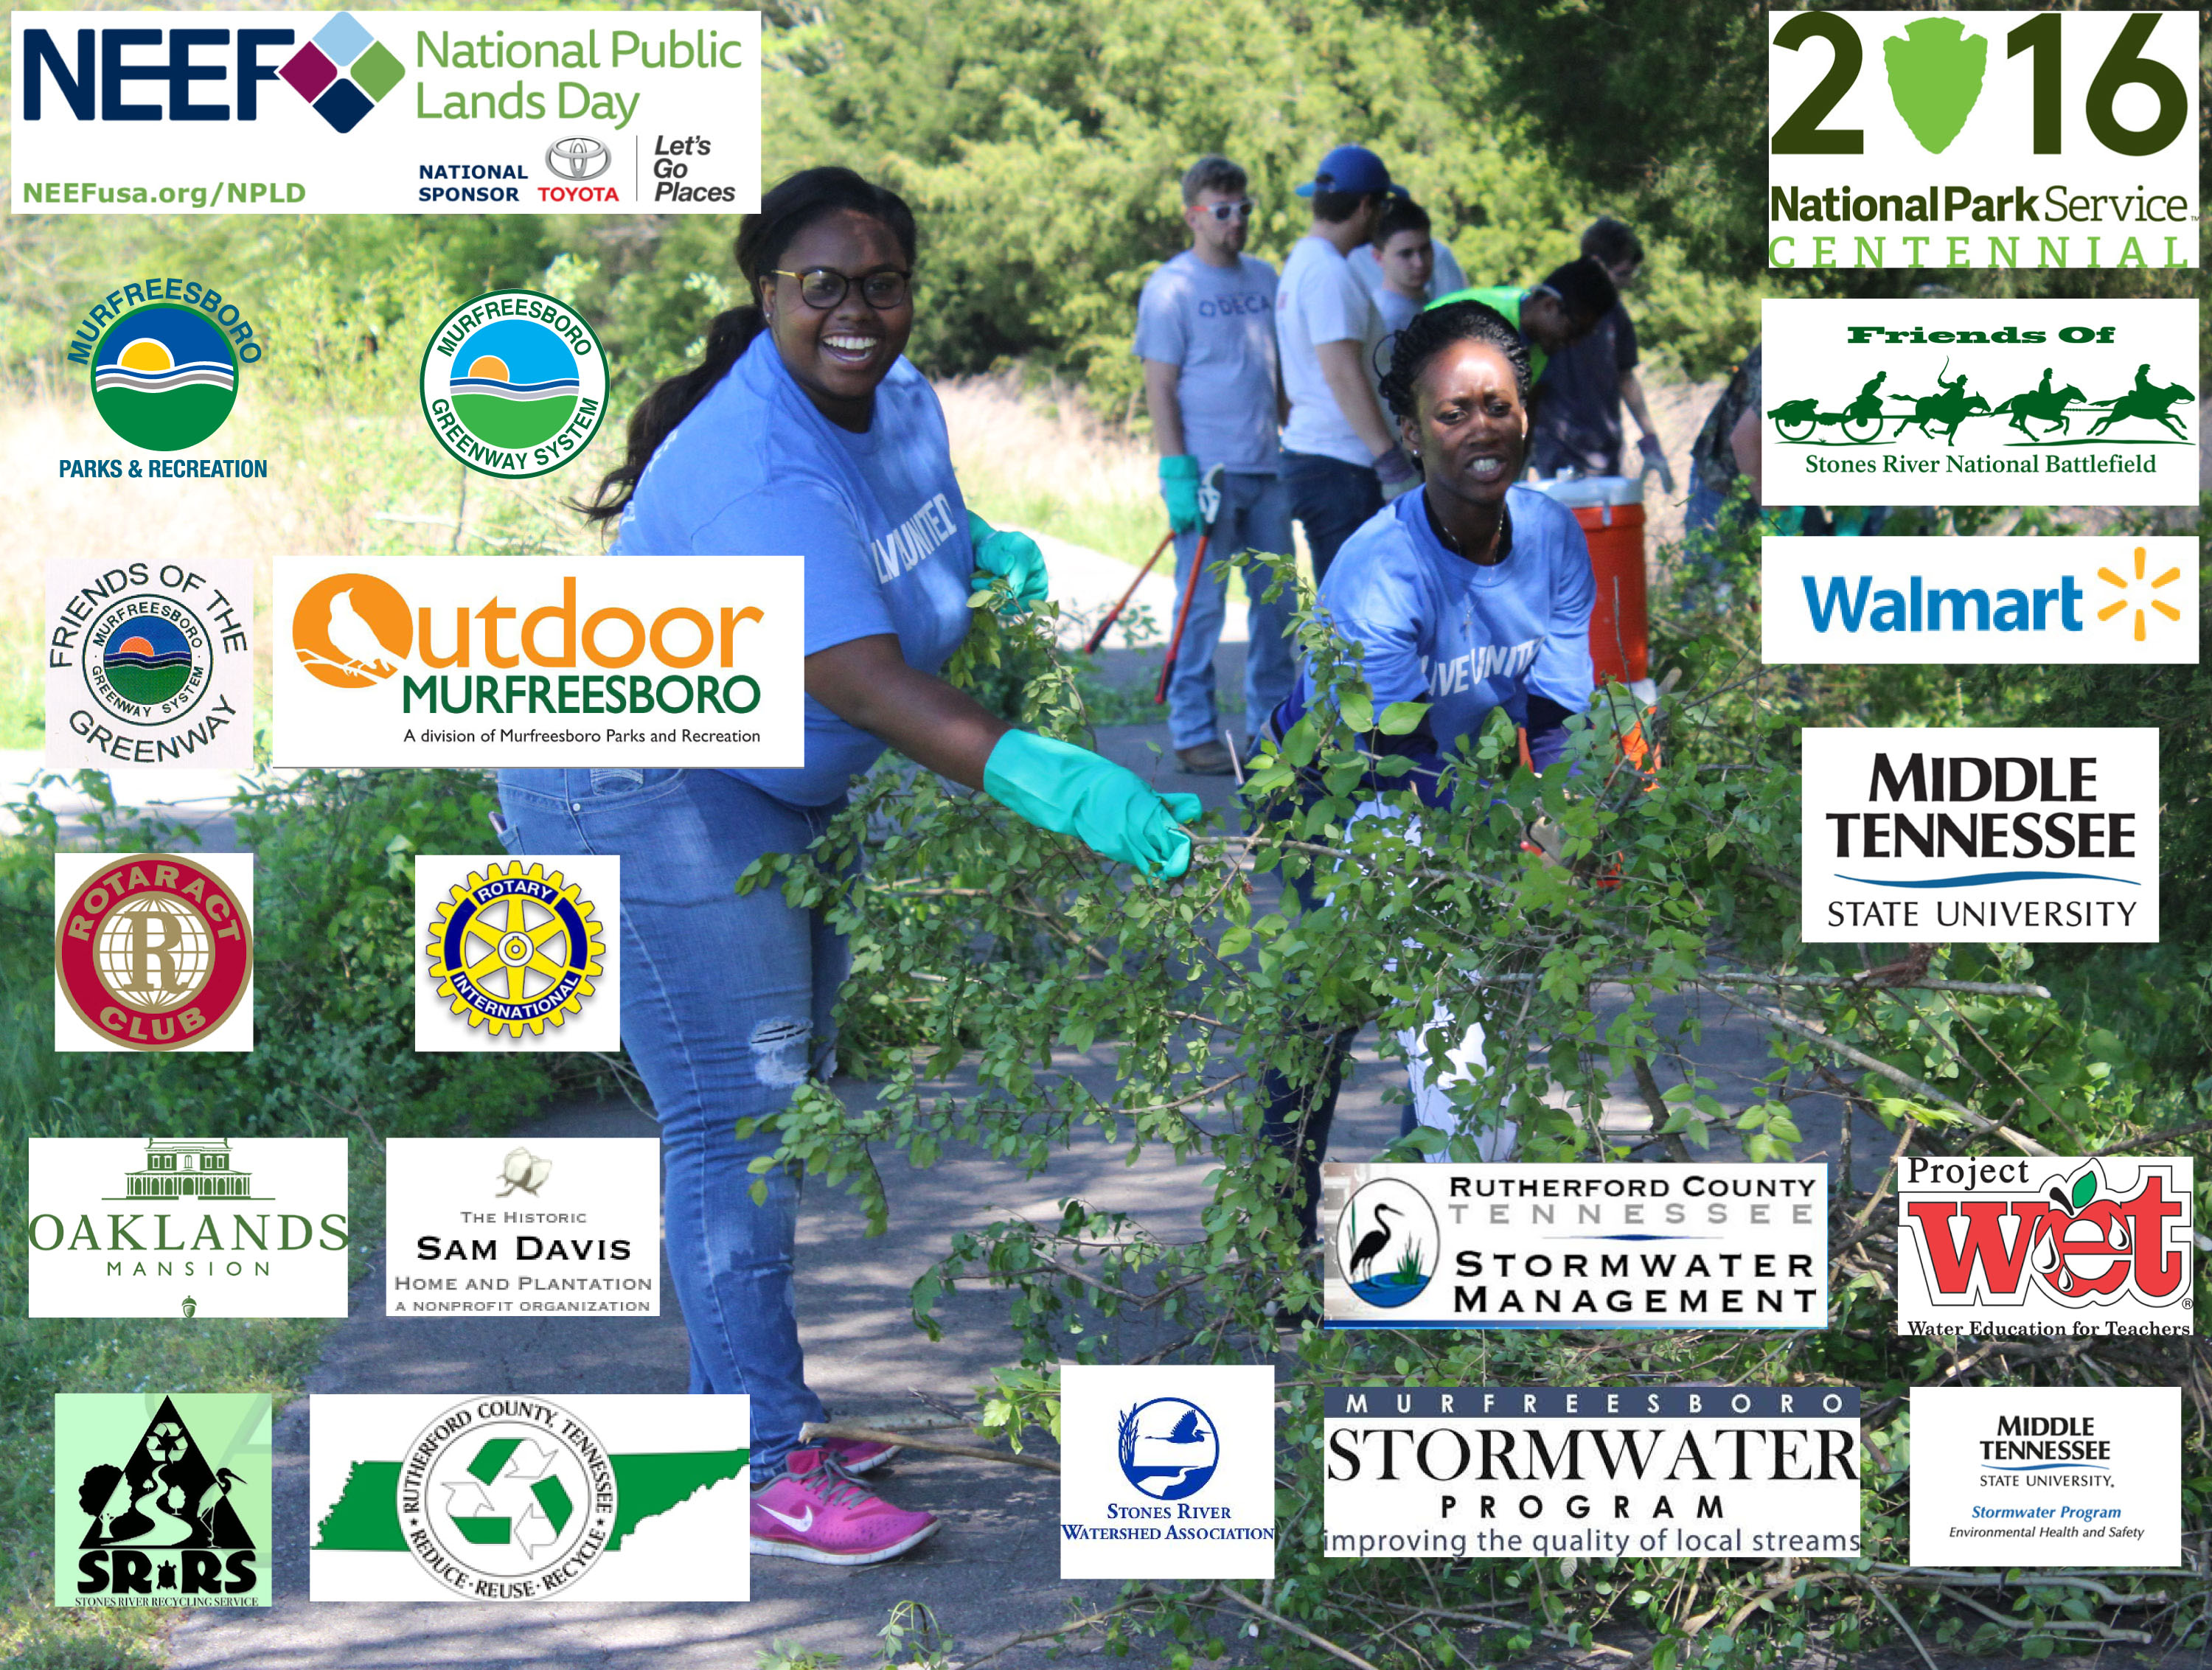 Two volunteers pause to smile while clearing brush. Photo includes logos of National Public Lands Day partners.